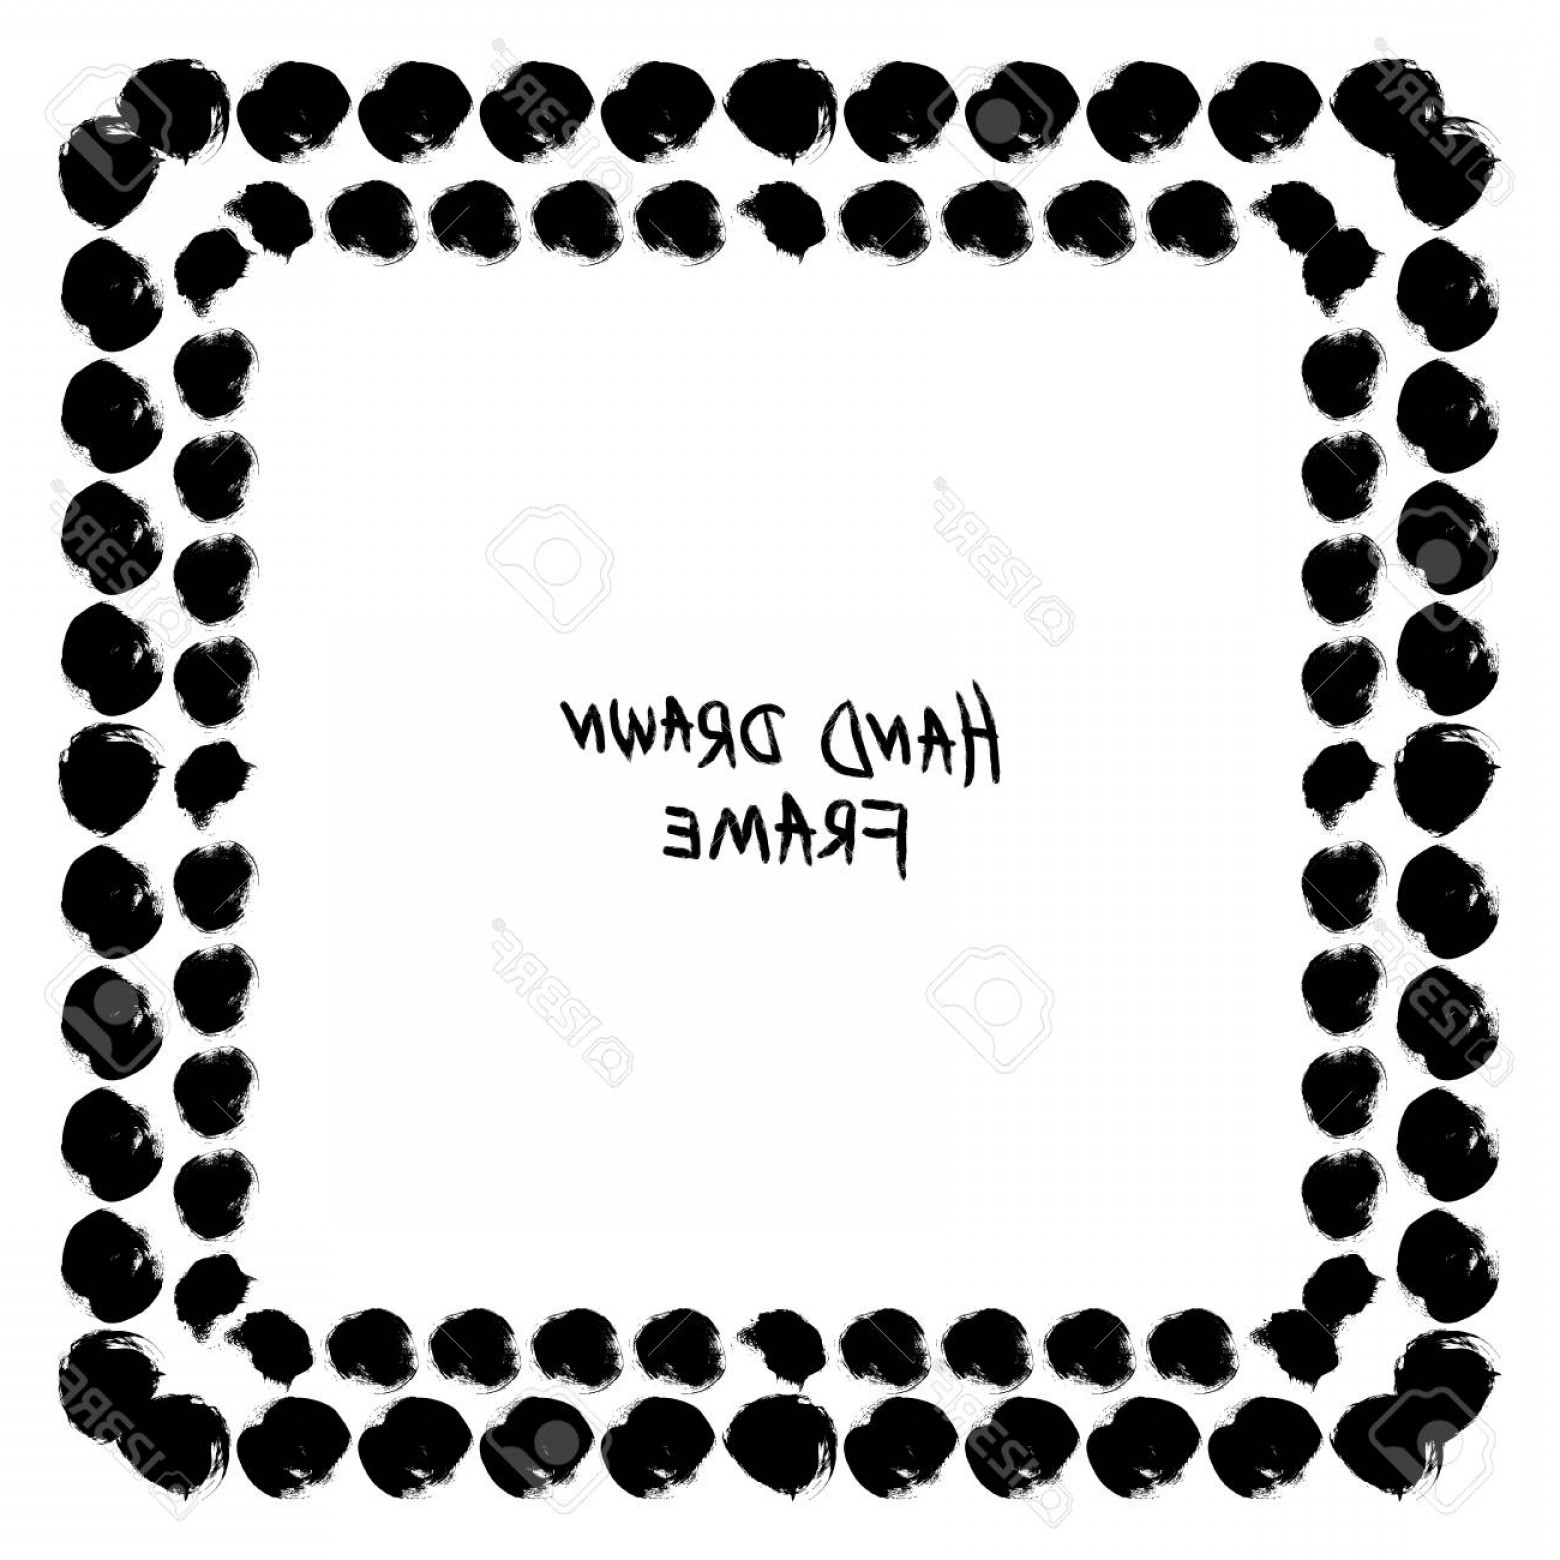 Square Black Vector Border Frame: Photostock Vector Abstract Black And White Hand Drawn Frame Square Vector Border With Hand Drawn Circle Brush Strokes